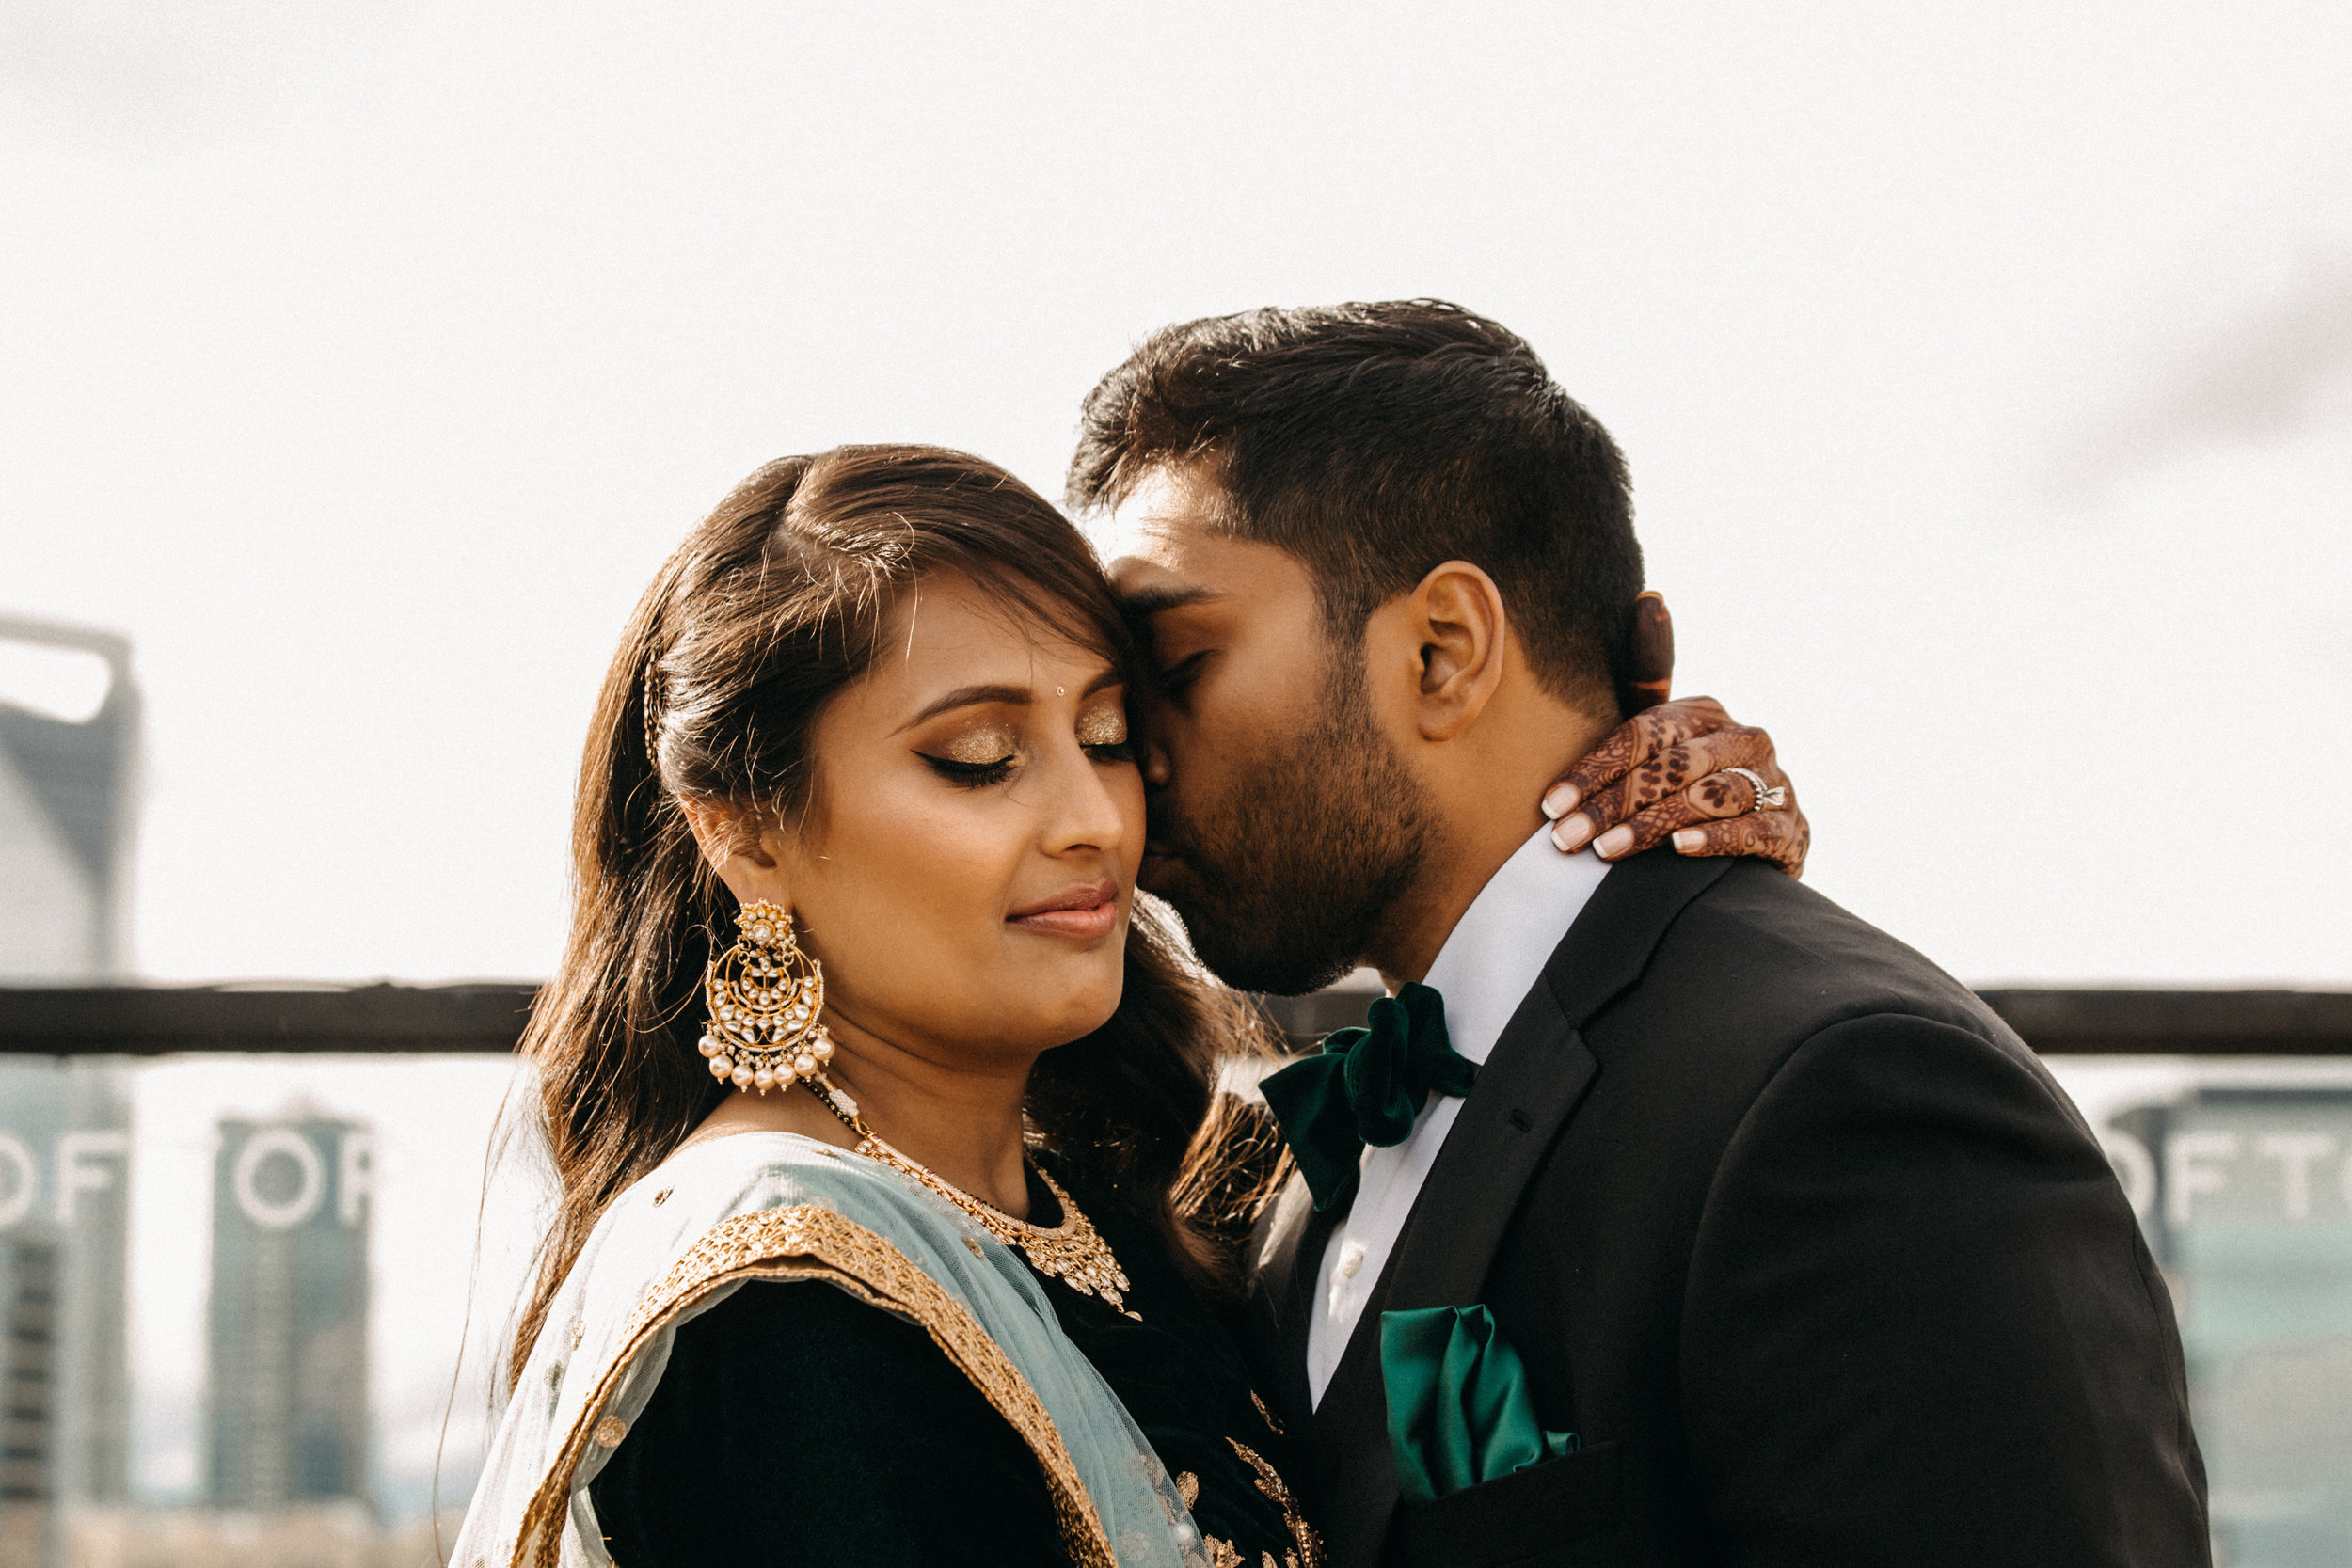 Hindu wedding in the heart of charlotte - Yesha and Vishal's wedding was filled with Hindu traditions the entire weekend long! The party was exciting and endless, and every moment was truly special and intricately planned.